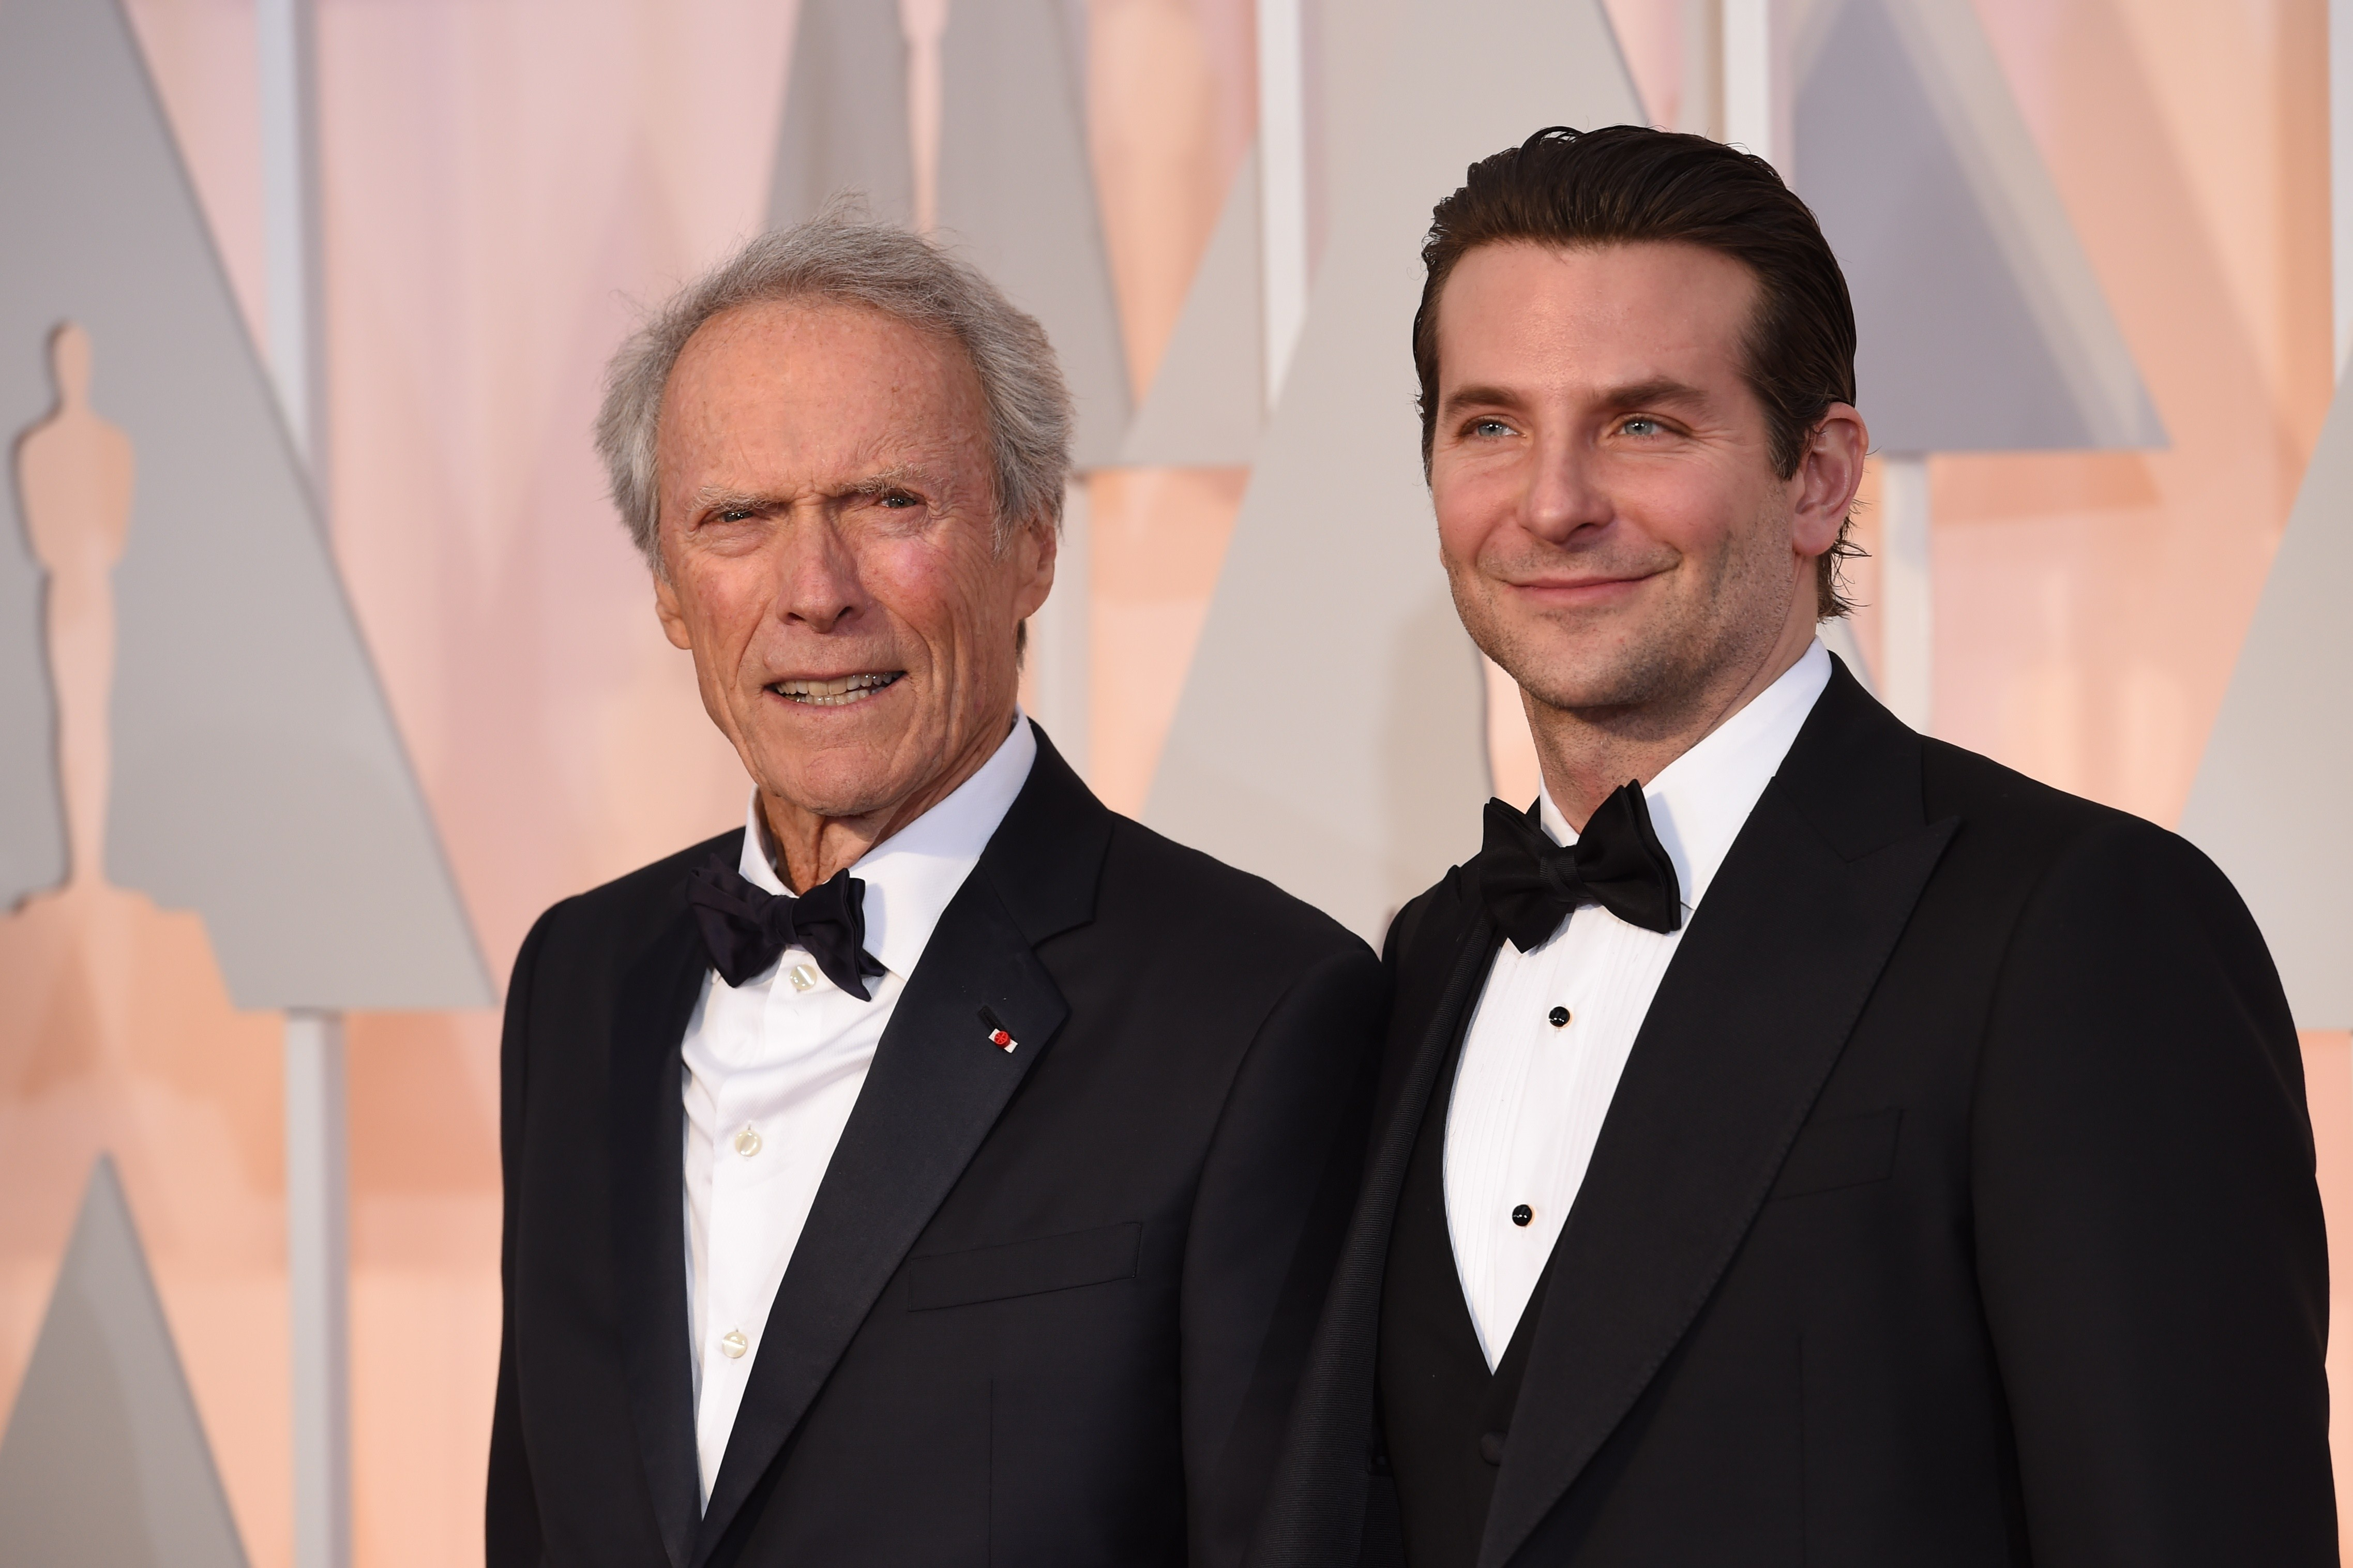 """American Sniper."" Clint Eastwood directed this instant classic with Bradley Cooper, earning them each Oscar nominations. (Photo: MARK RALSTON/AFP/Getty Images)"